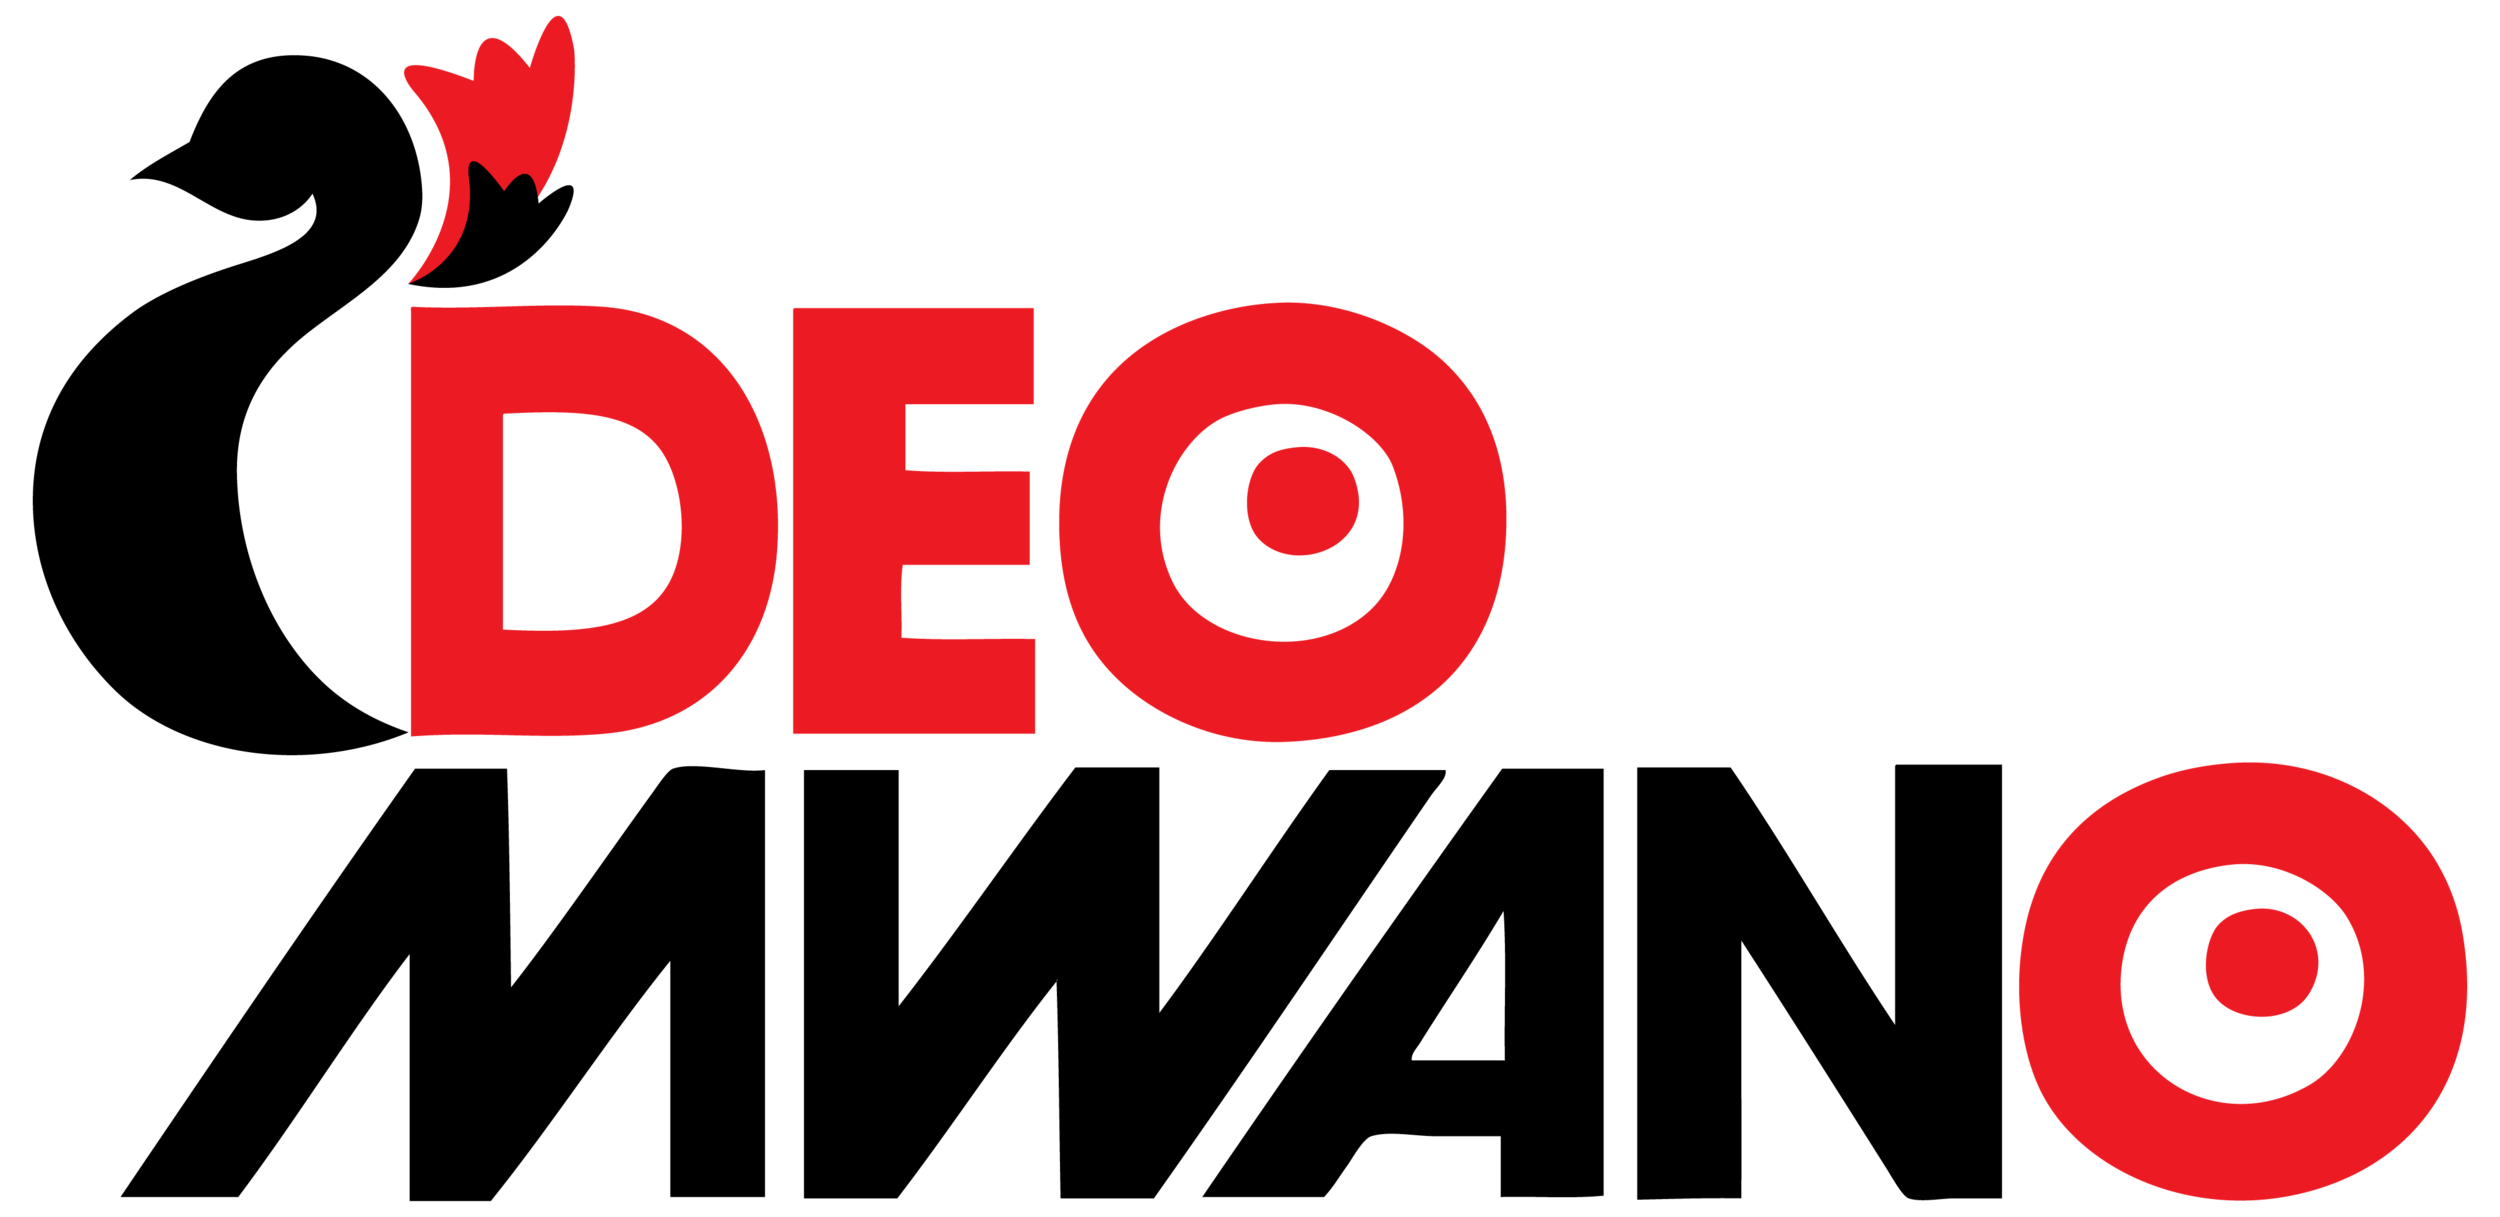 Deo Mwano logo Diego created after taking advice from Travis and Kyle York.